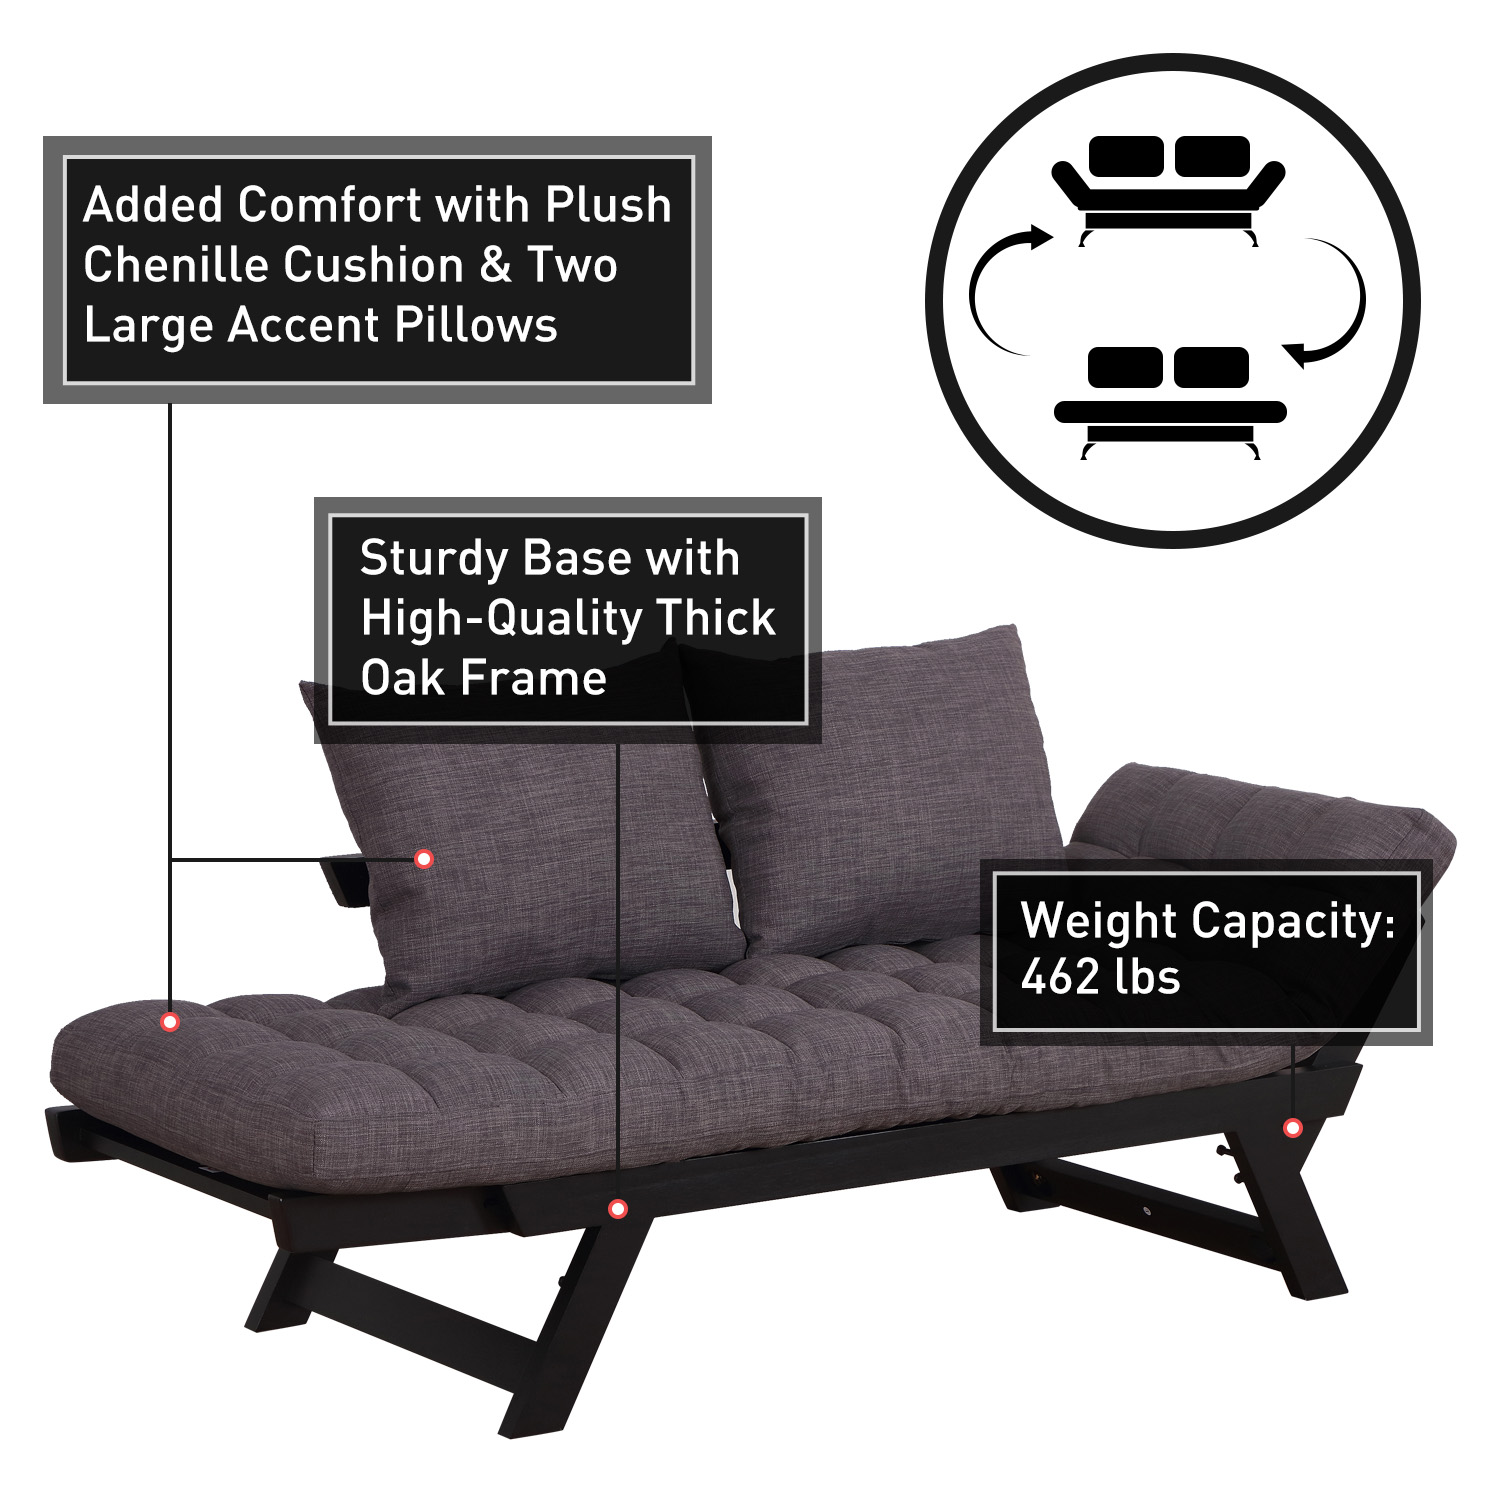 Pleasing Details About Convertible Sofa Bed Sleeper Couch Chaise Lounge Chair Adjustable Padded Pillow Creativecarmelina Interior Chair Design Creativecarmelinacom